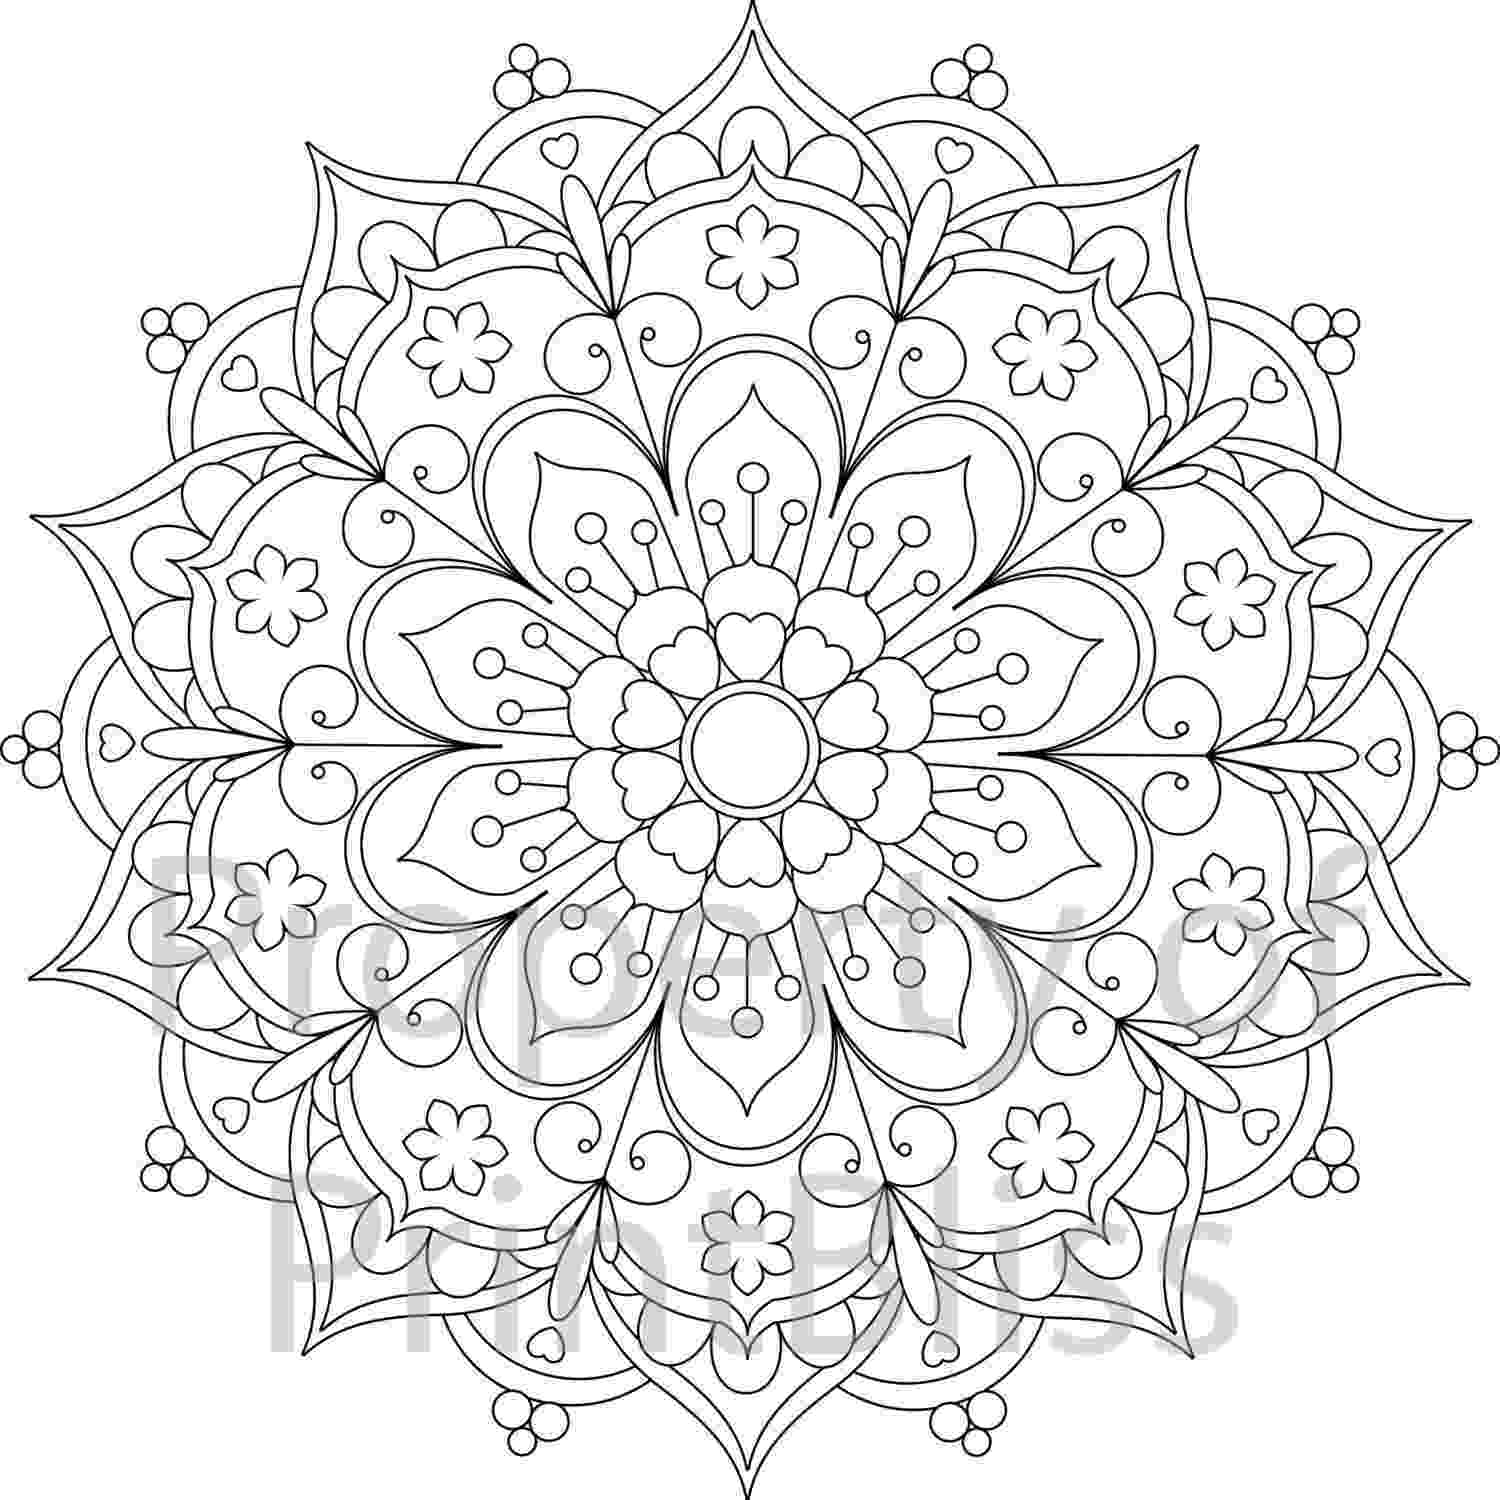 free printable mandala coloring sheets free printable mandala coloring pages for adults best coloring sheets mandala printable free